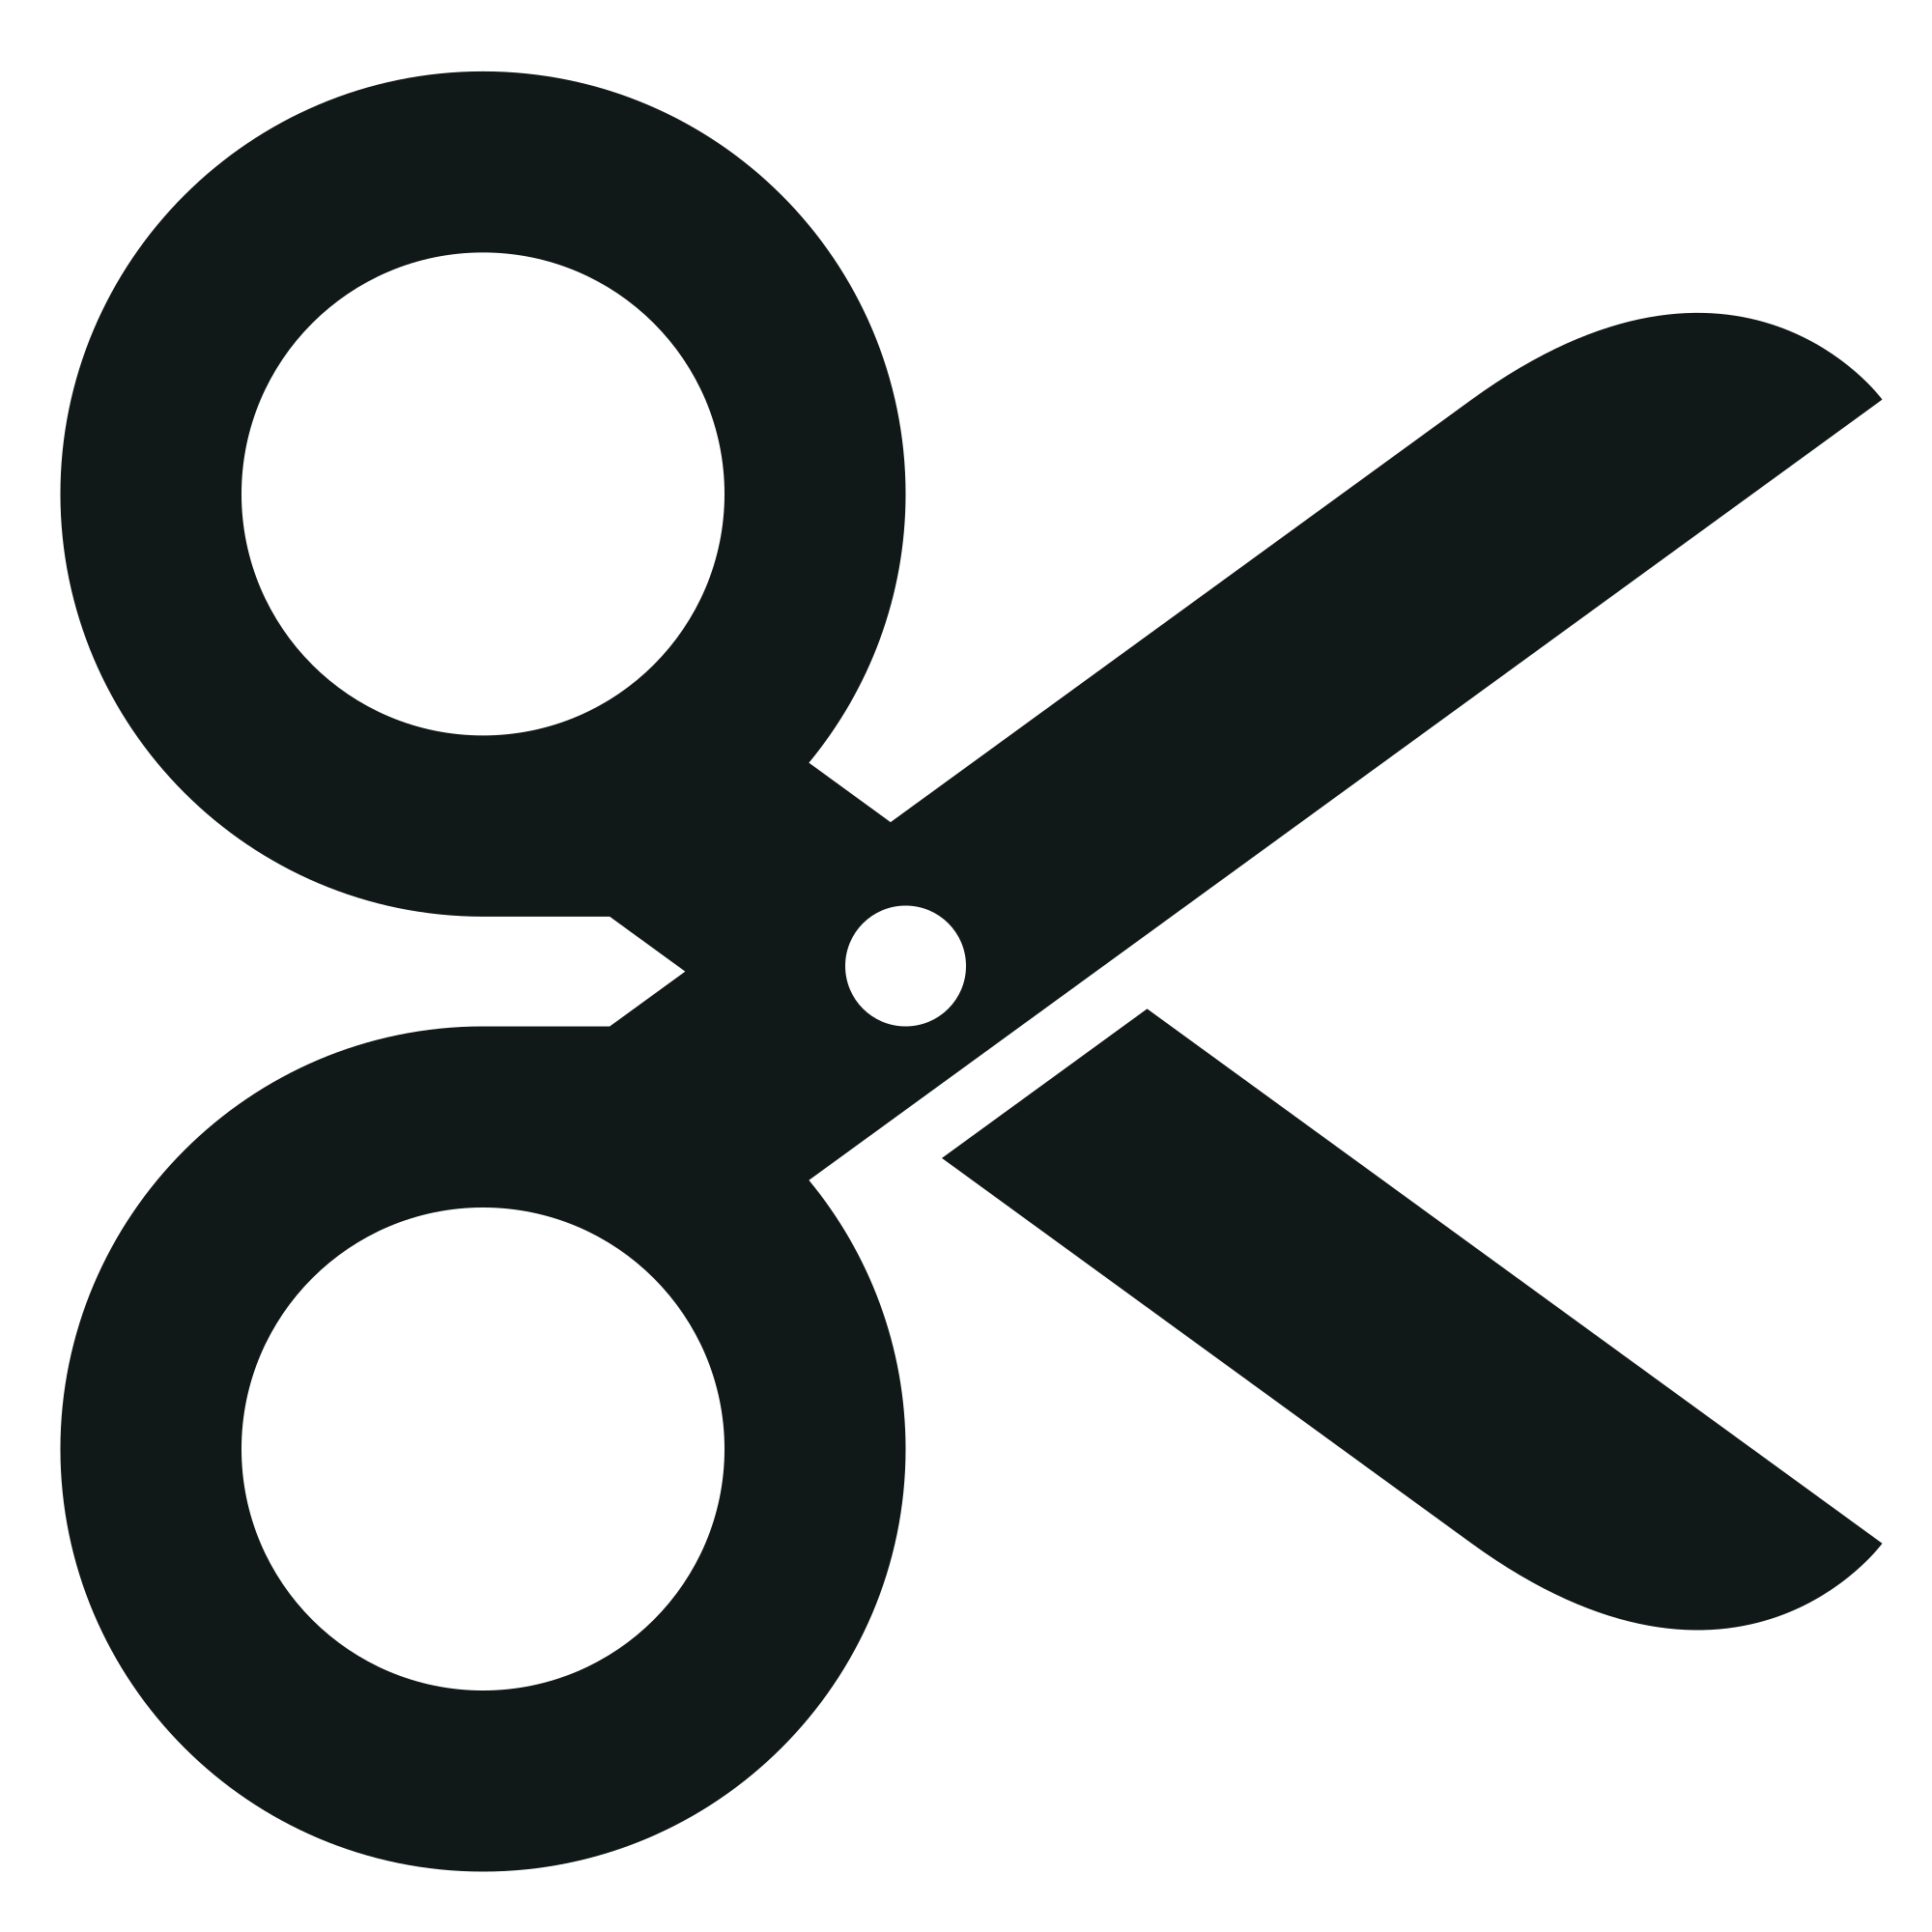 Cut icon png Free Download.